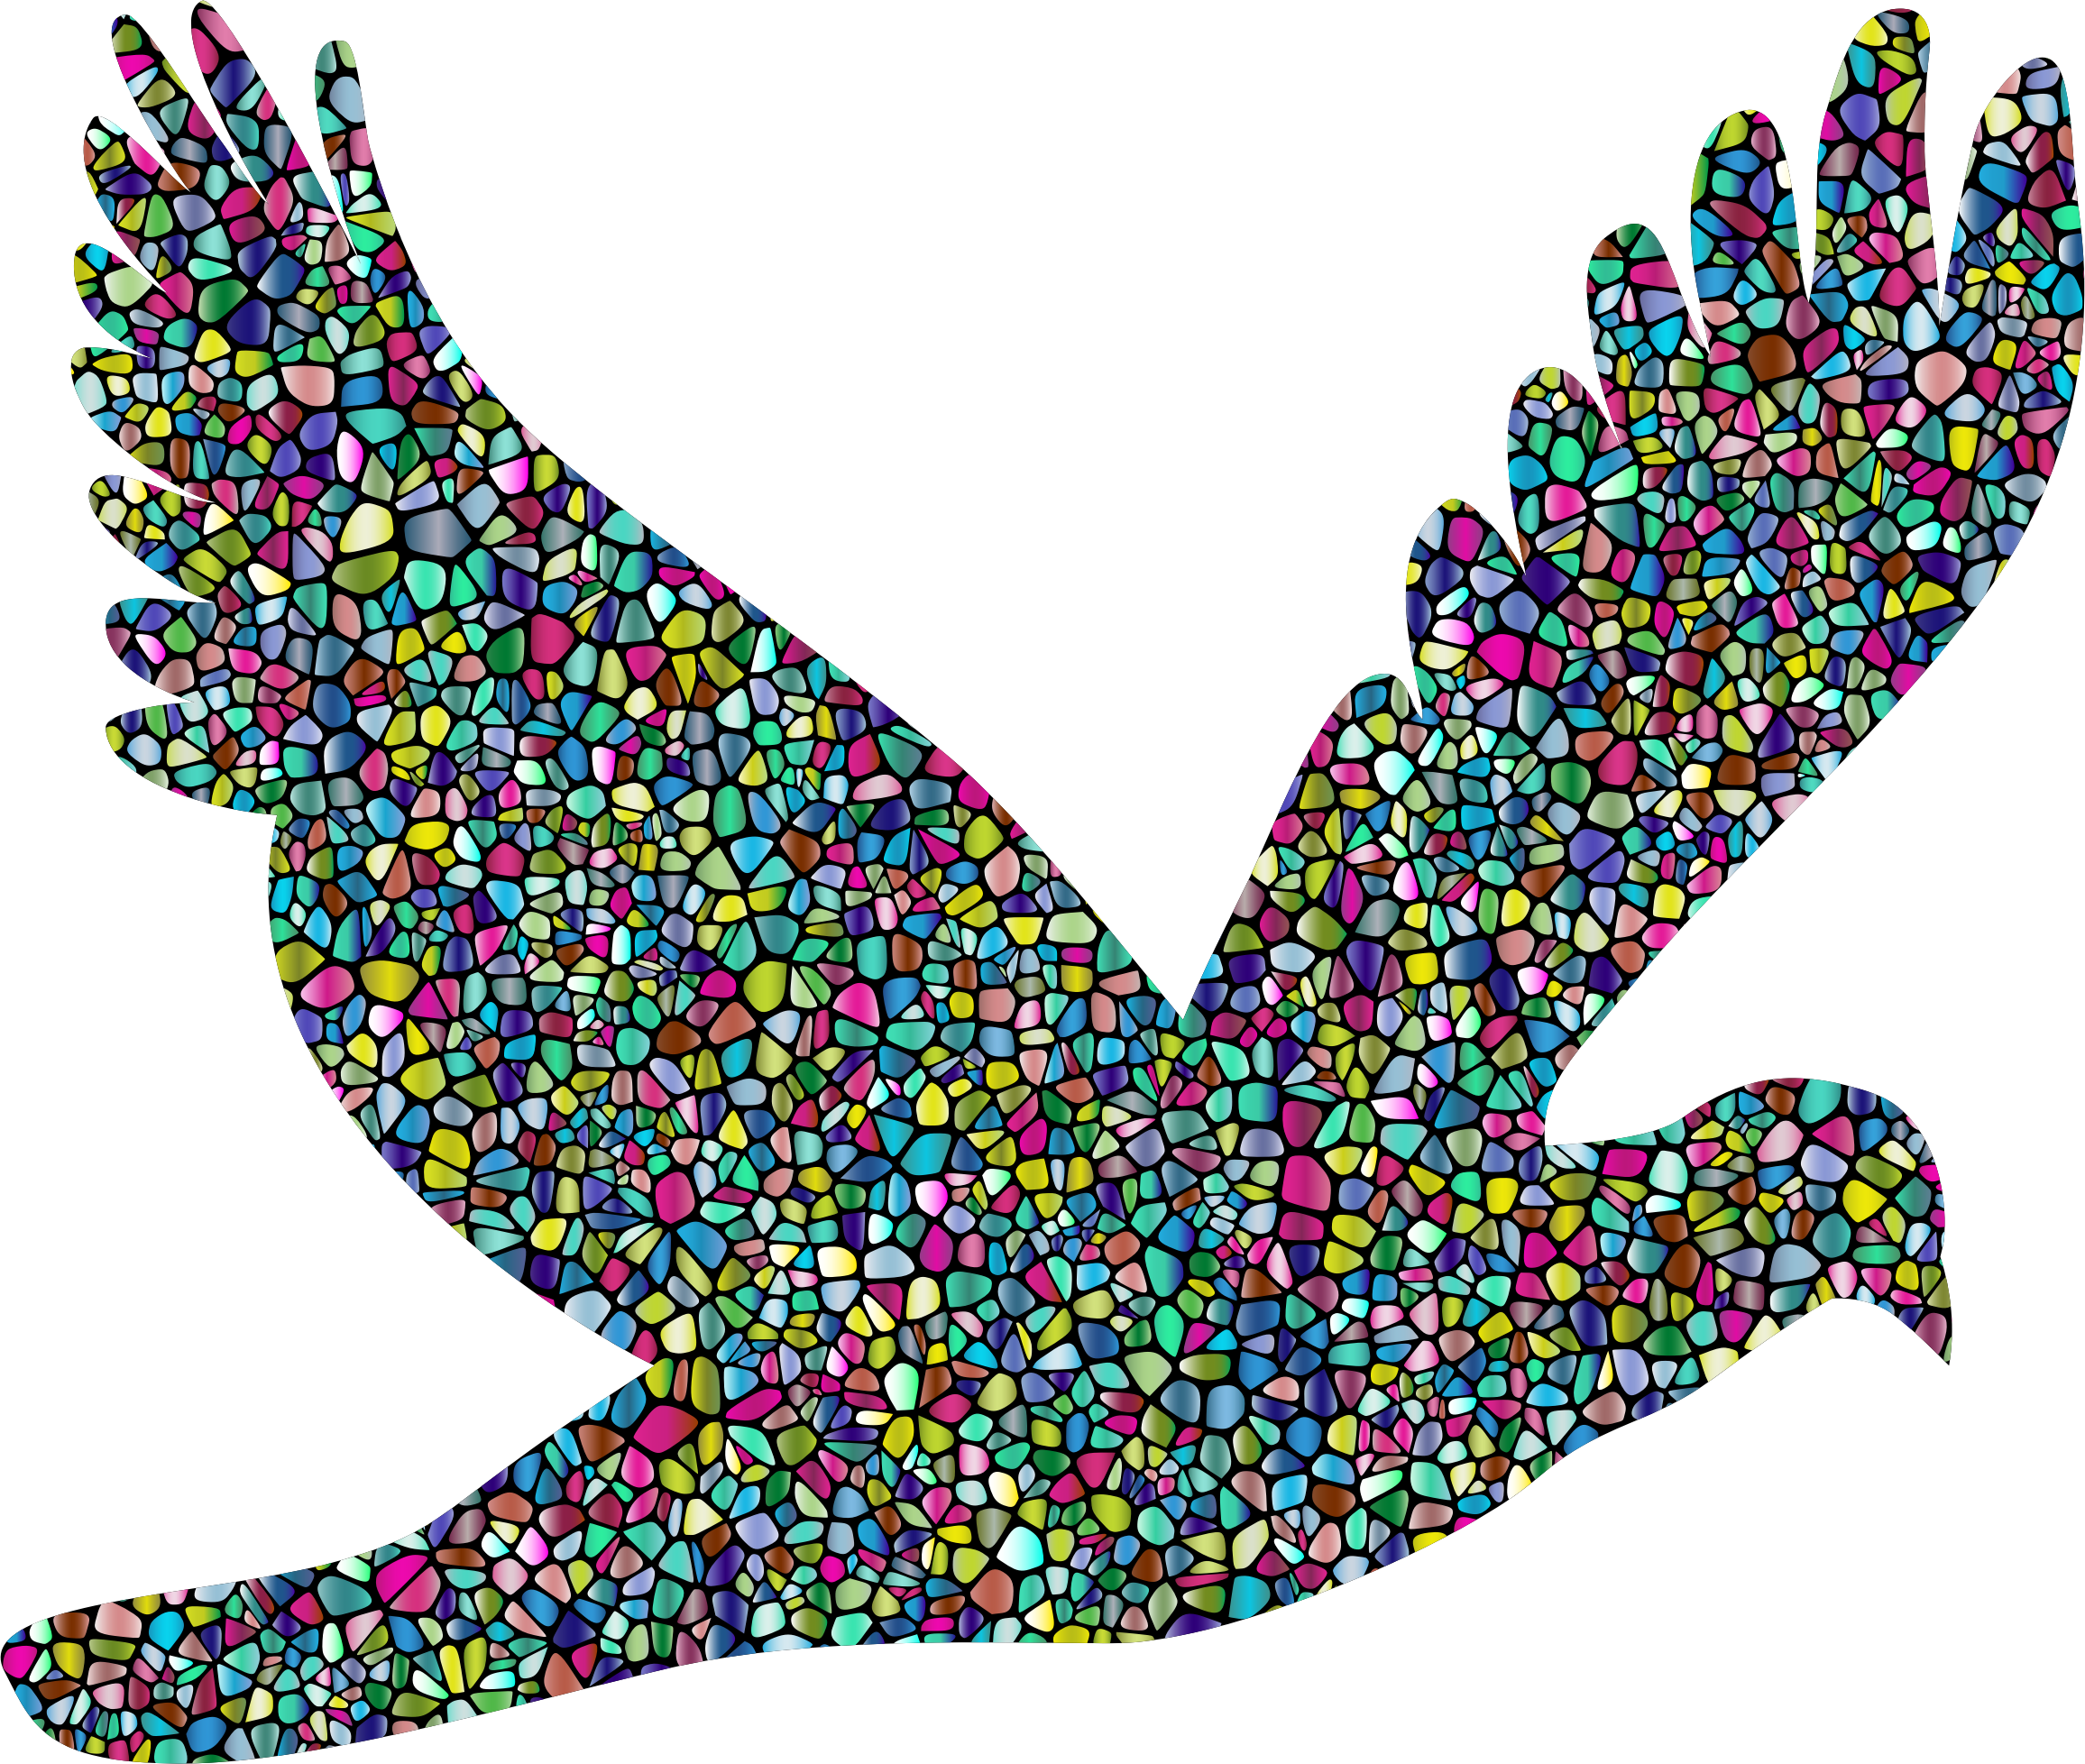 Polyprismatic Tiled Flying Dove Silhouette With Background by GDJ